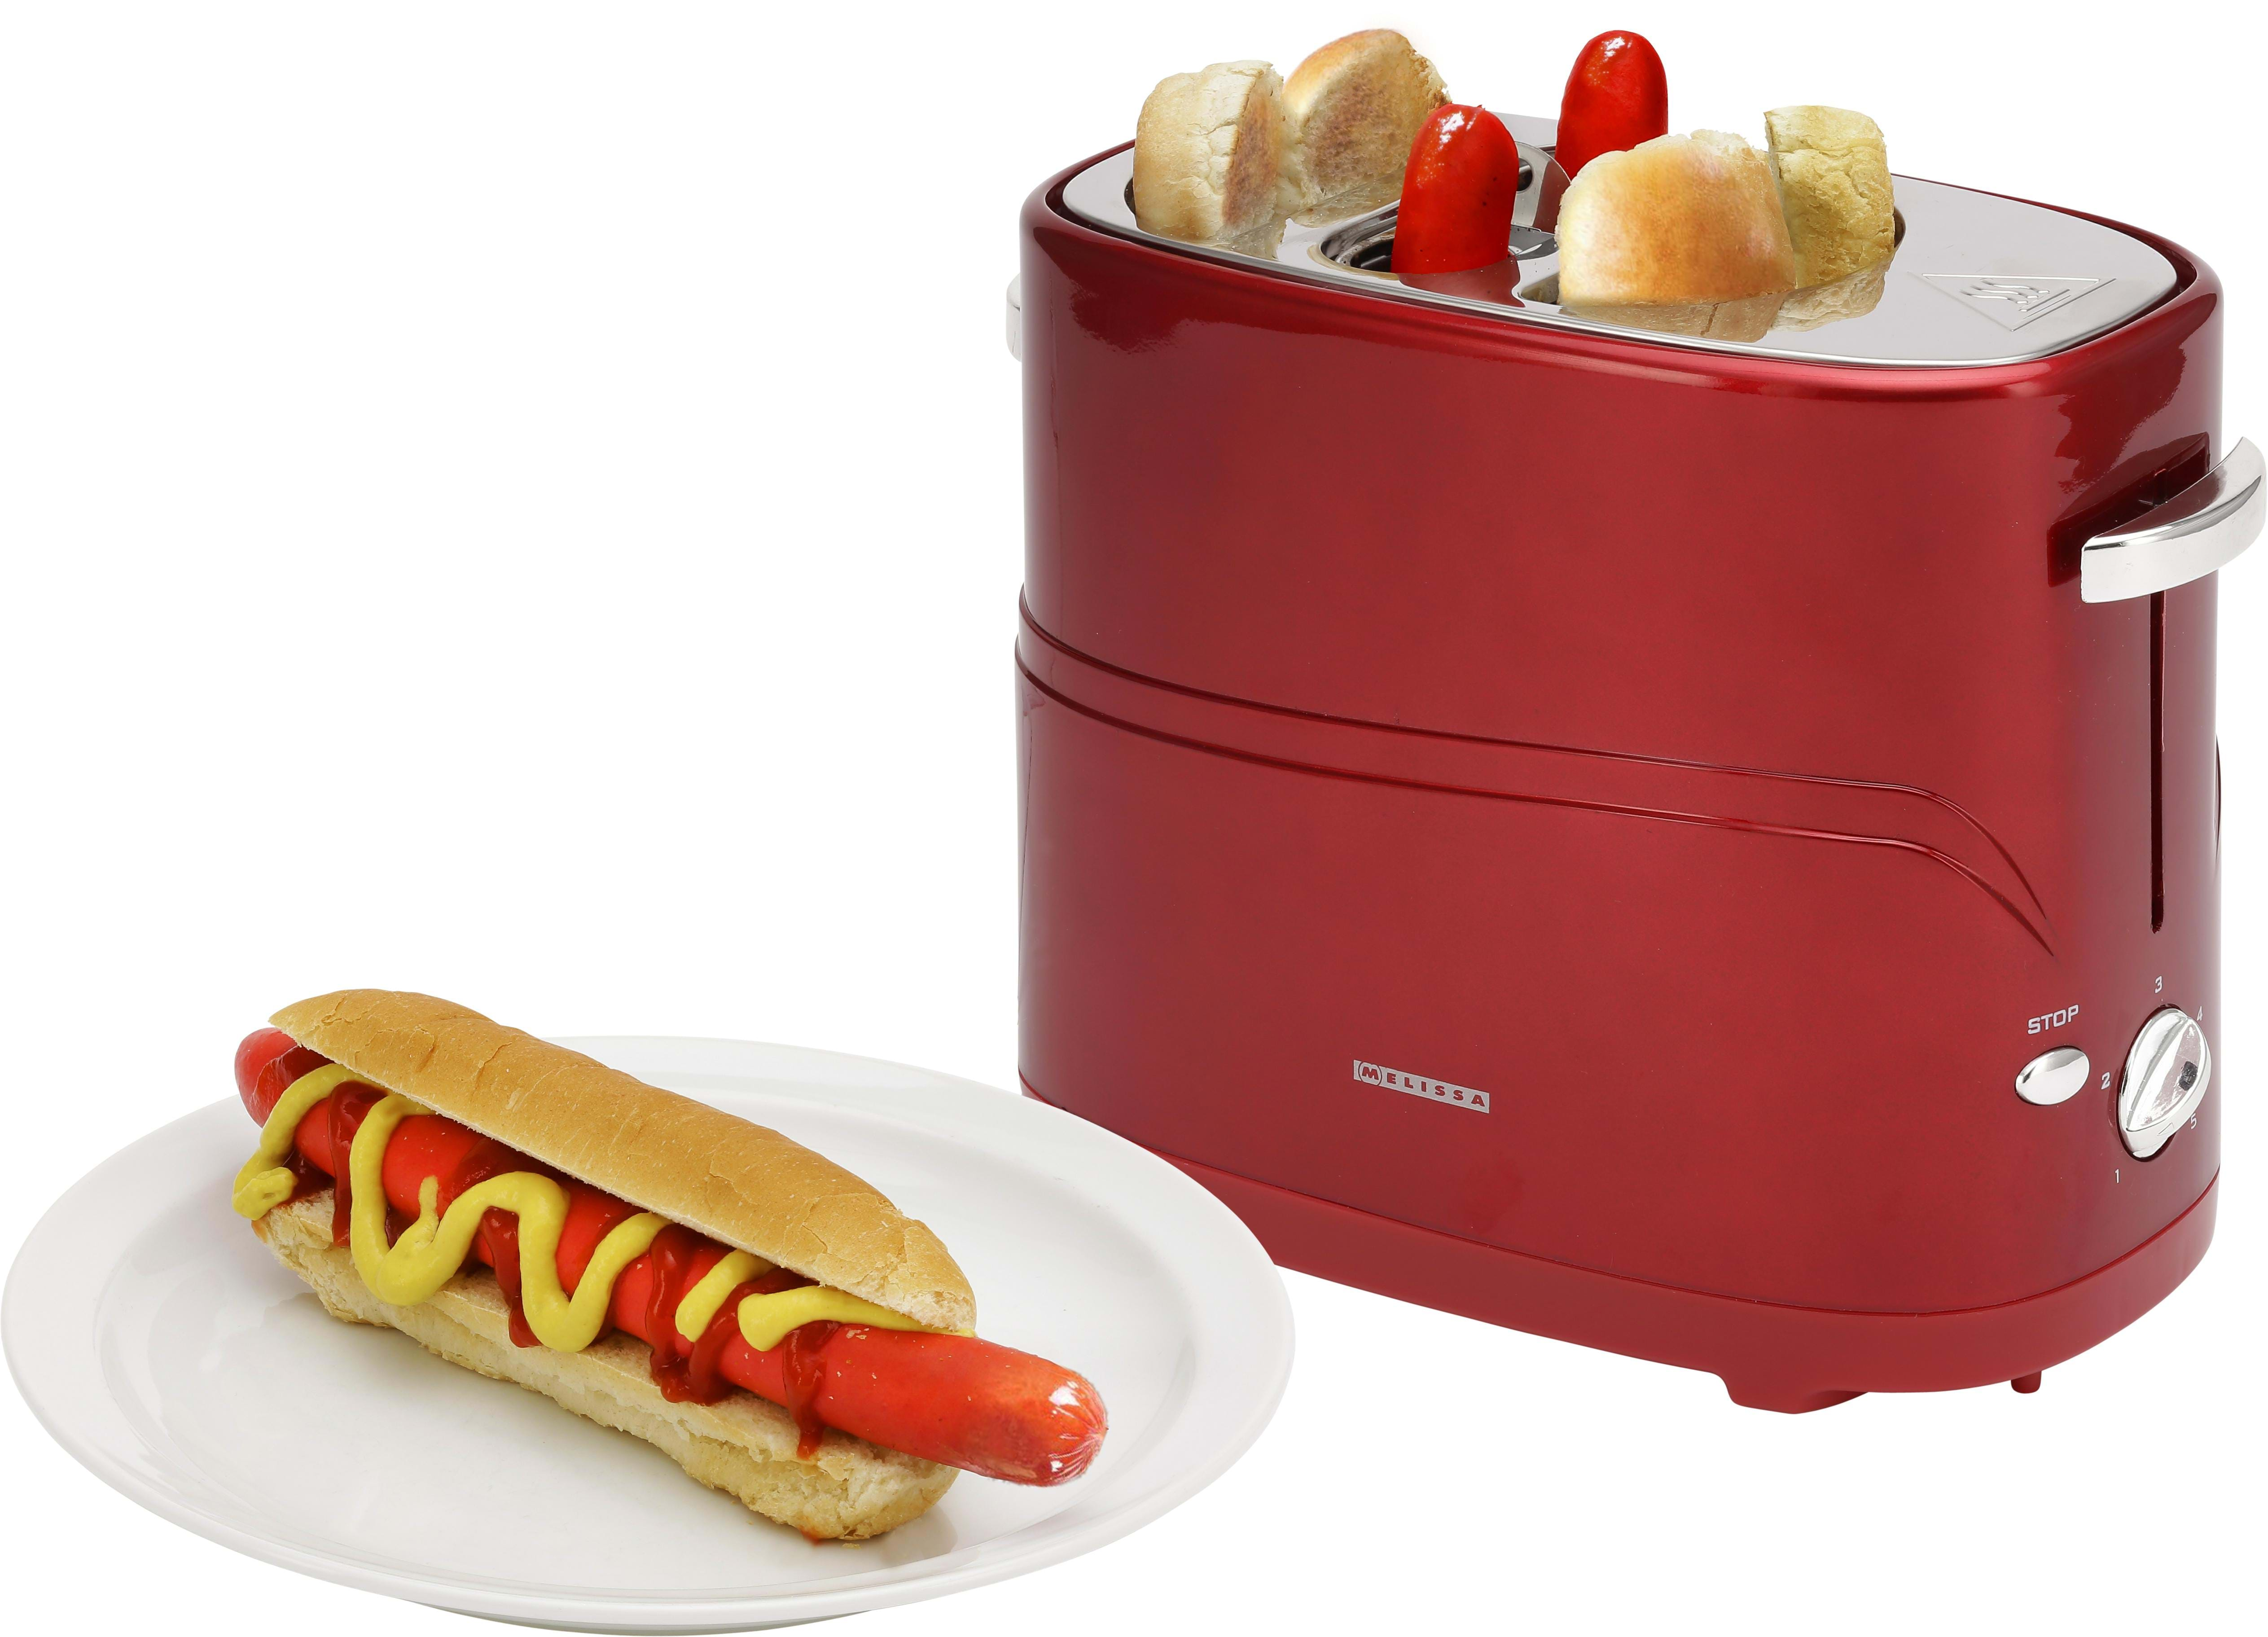 melissa hot dog maker red auf lager g nstig. Black Bedroom Furniture Sets. Home Design Ideas